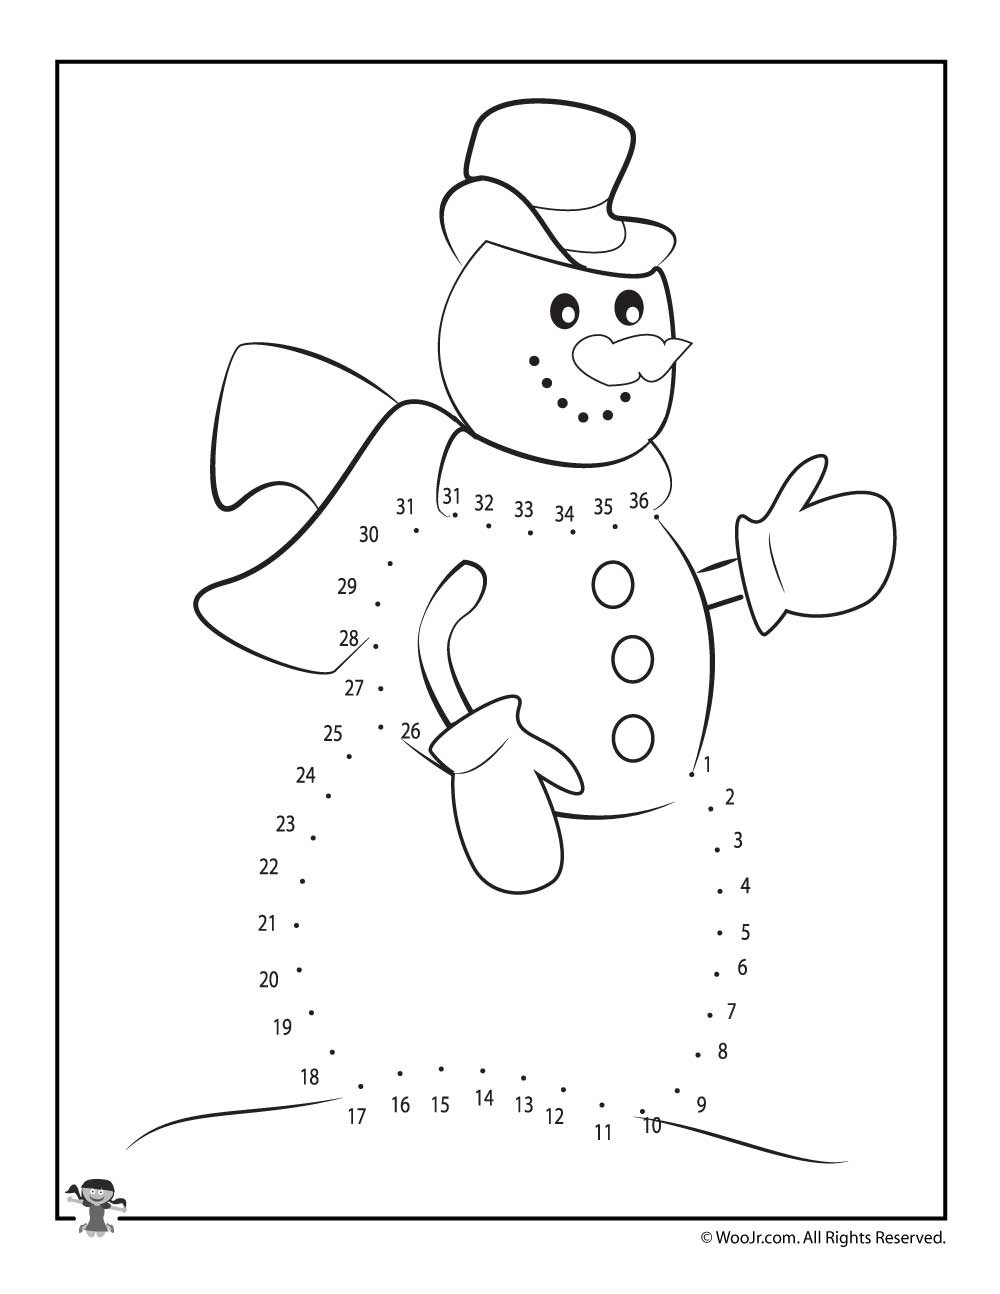 Christmas Connect the Dots Printables Winter Snowman Dot to Dot Printable